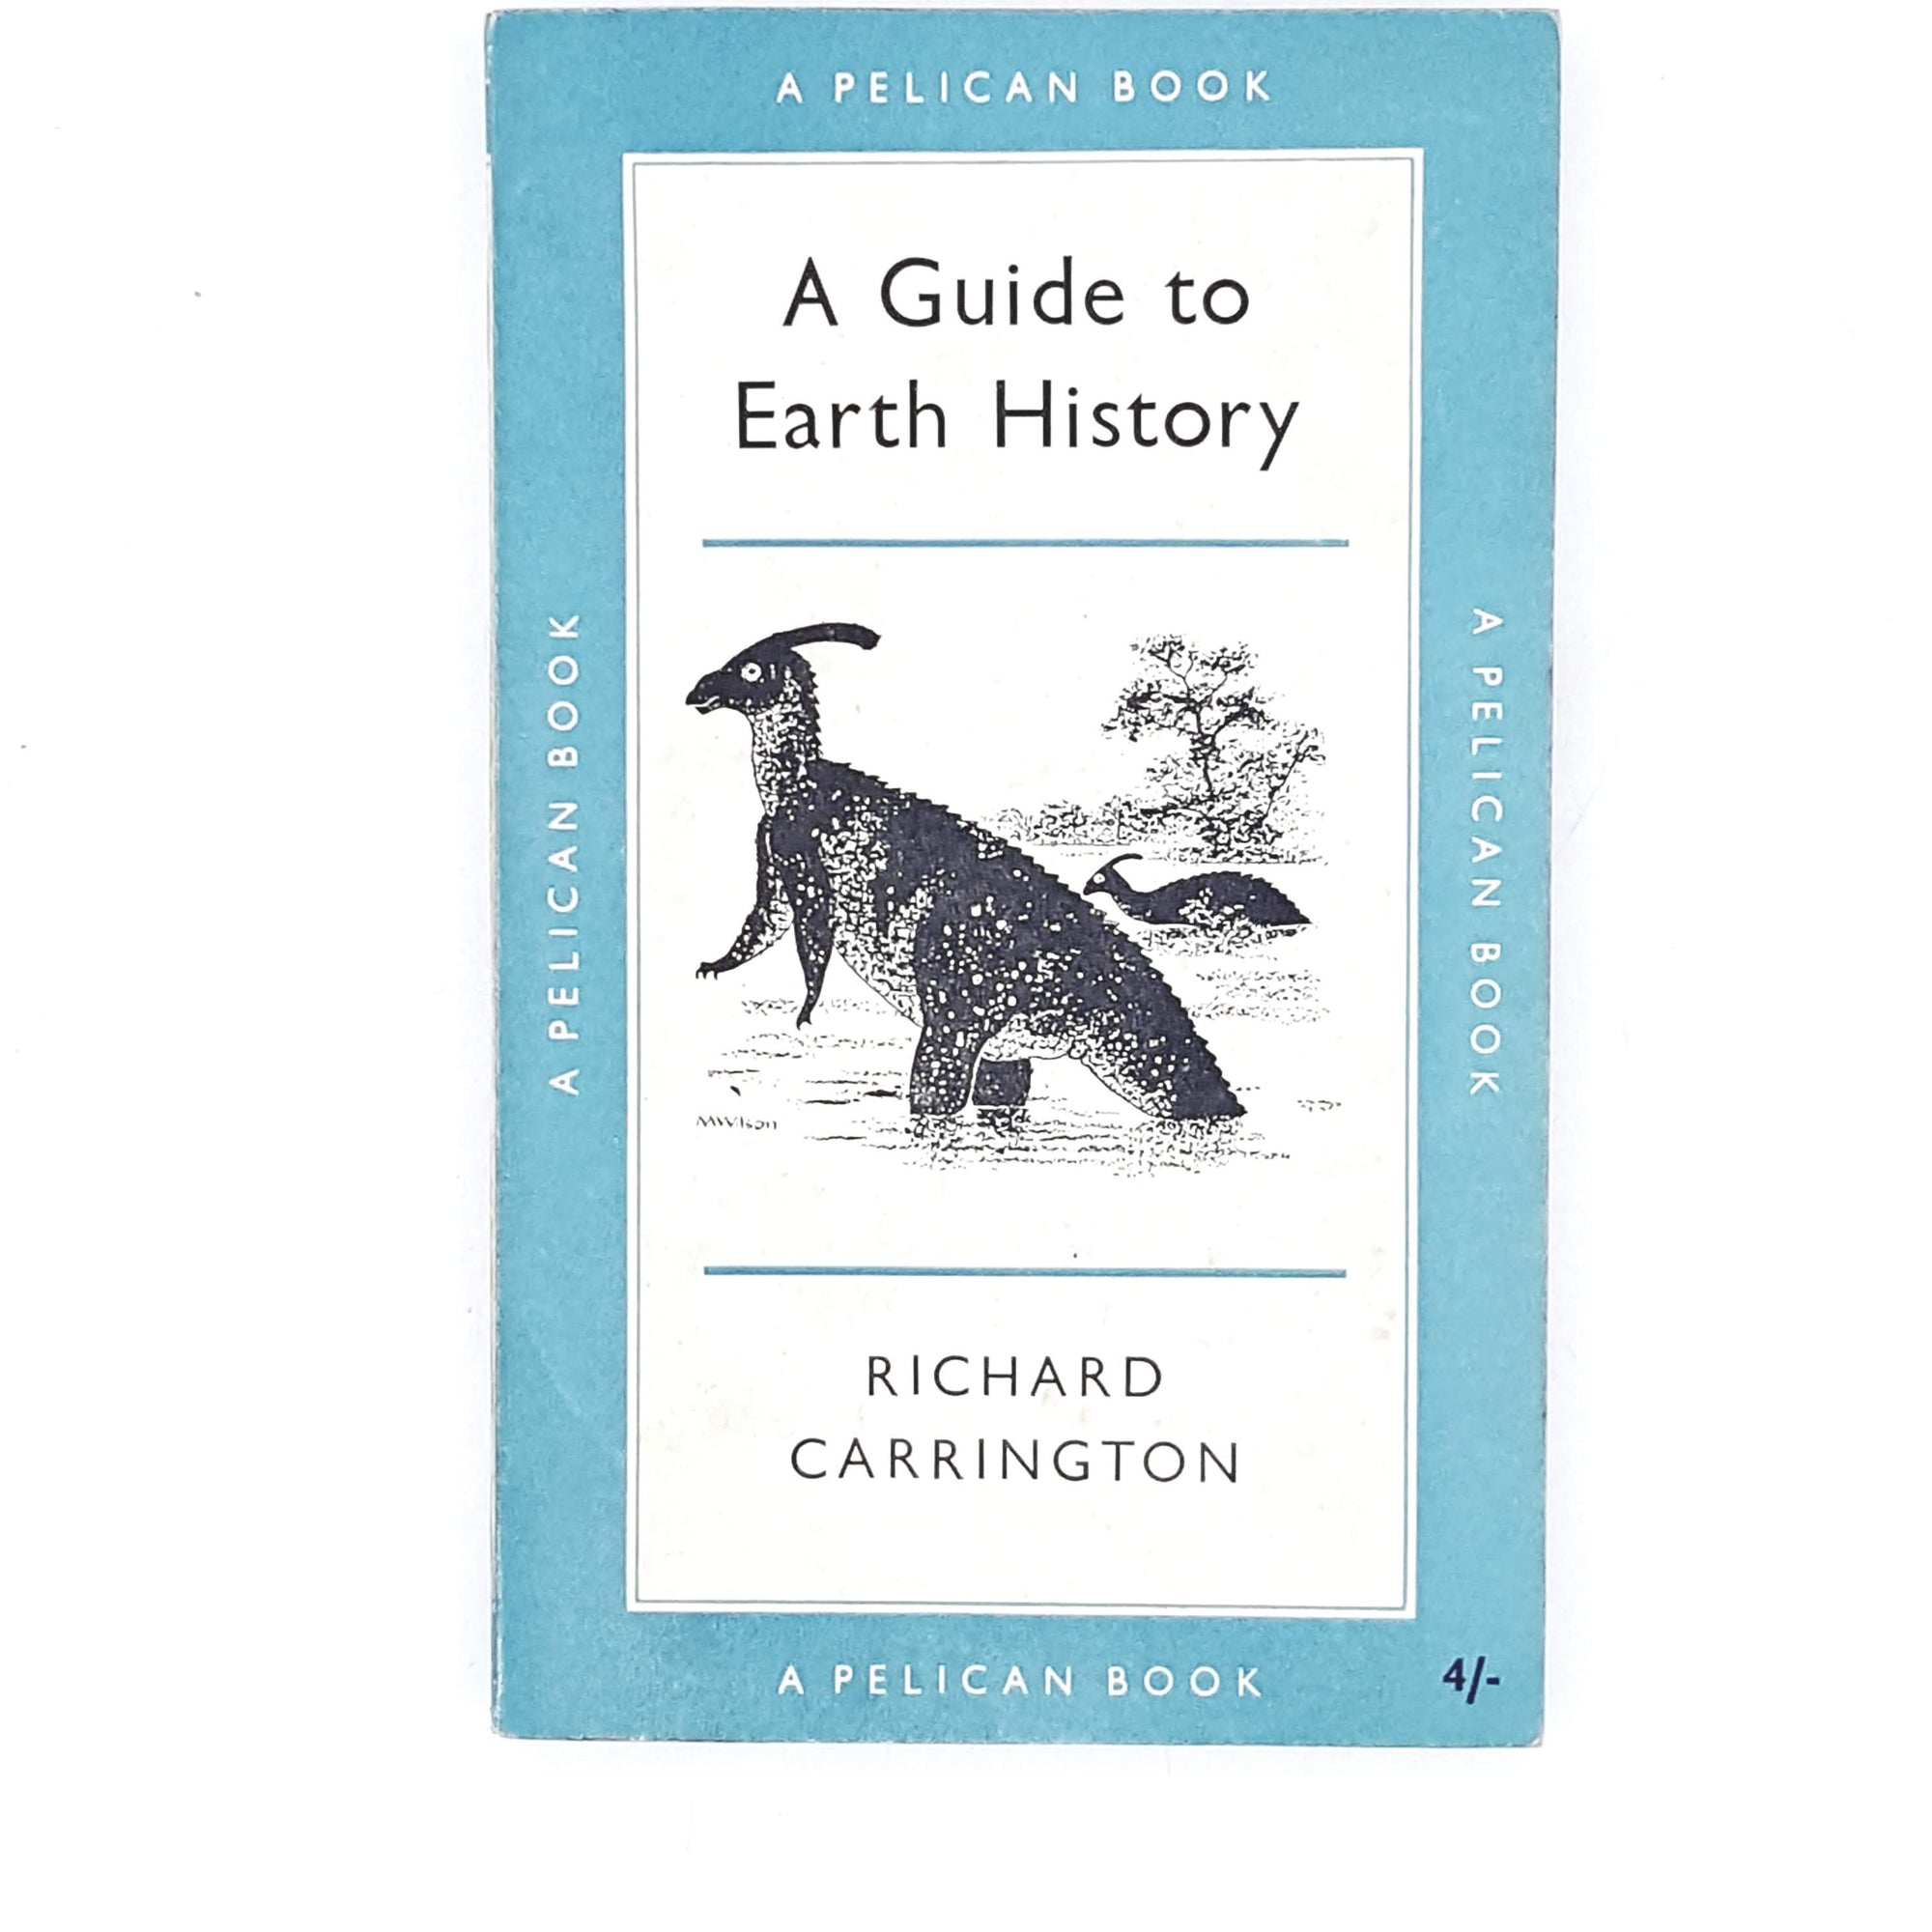 Vintage Pelican A Guide to Earth History by Richard Carrington 1958